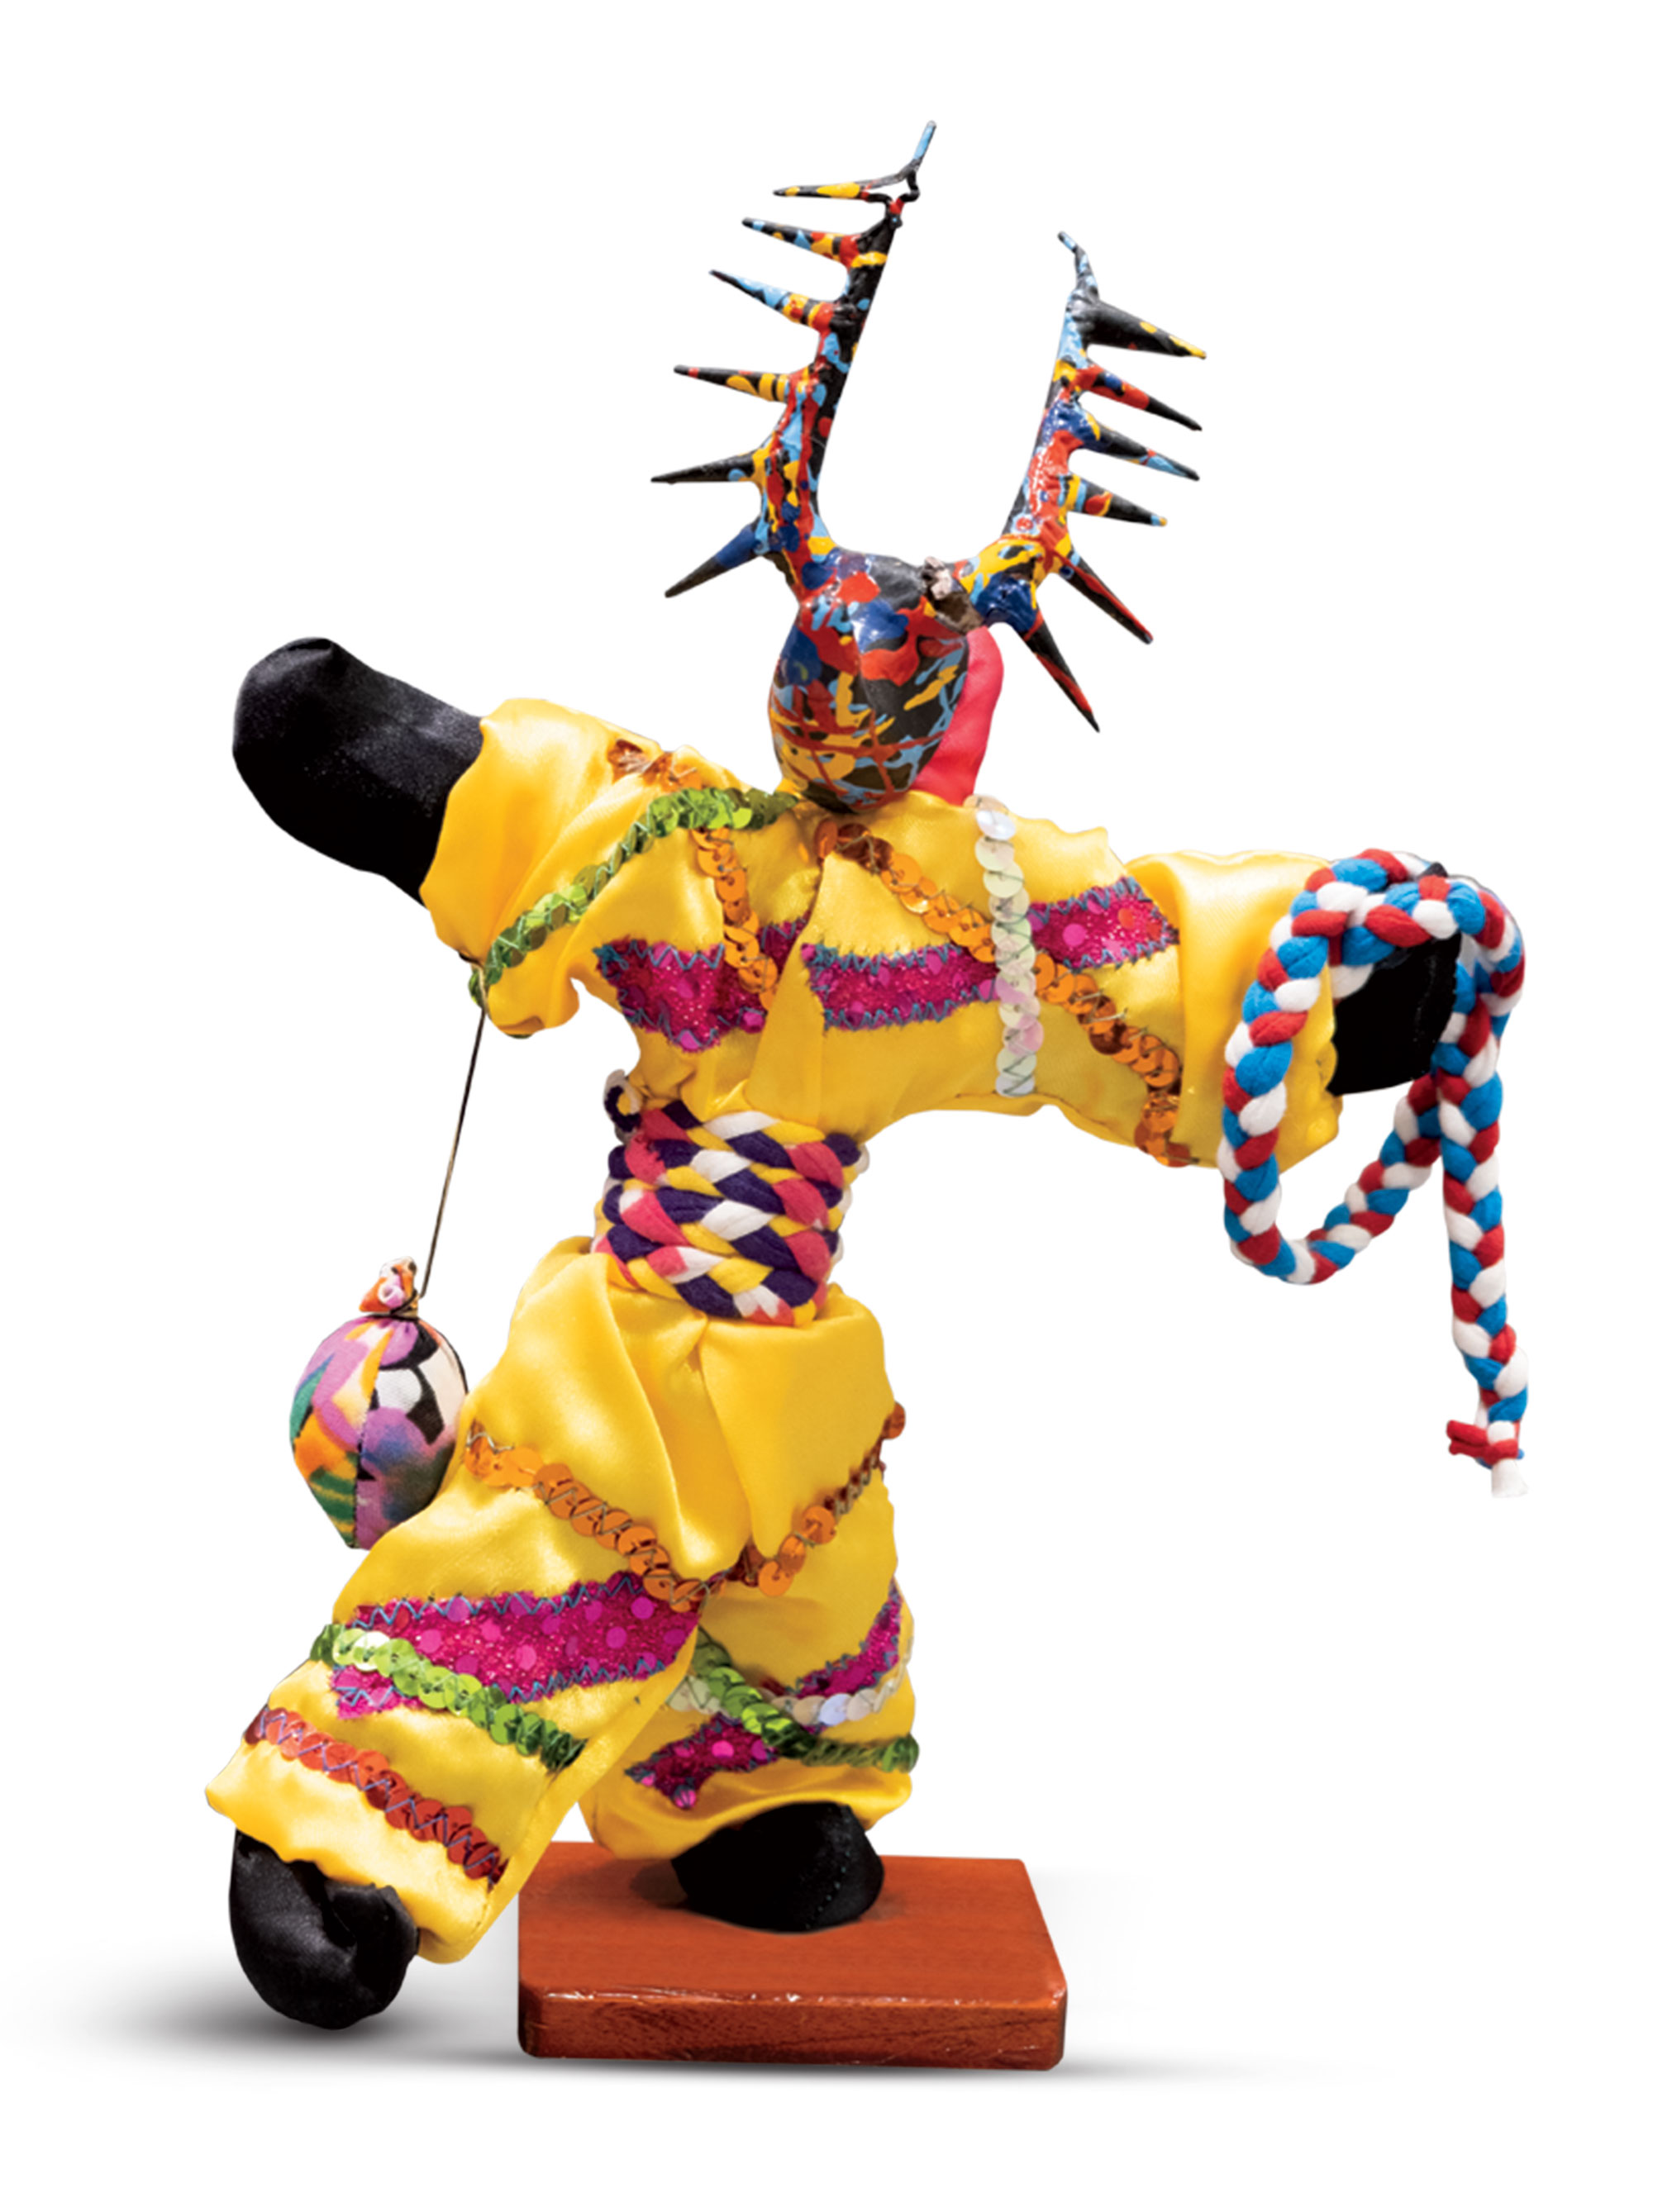 Made of textiles, wood and papier-mâché, this vibrant figurine represents a figure in a Dominican Republic carnival. Andres obtained it during a 2015 mission trip to Santo Domingo. The piece signals if a patient room is occupied.